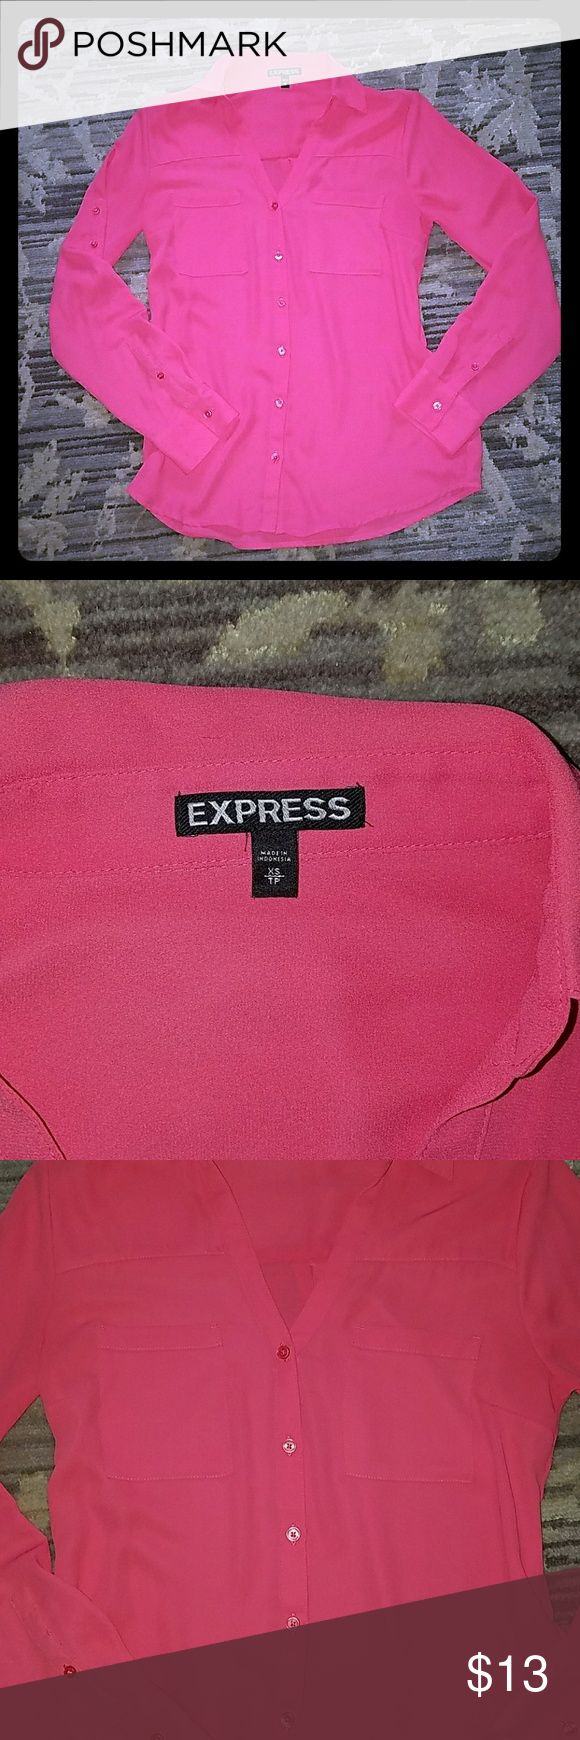 Hot pink express blouse! Good condition Express hot pink blouse! It doesn't say portofino on it, but it's fit and style are almost identical. There is a small snag that is pictured with and without flash in pics 4 and 5, otherwise great condition! Sleeves can be buttoned up or down as well. Express Tops Blouses